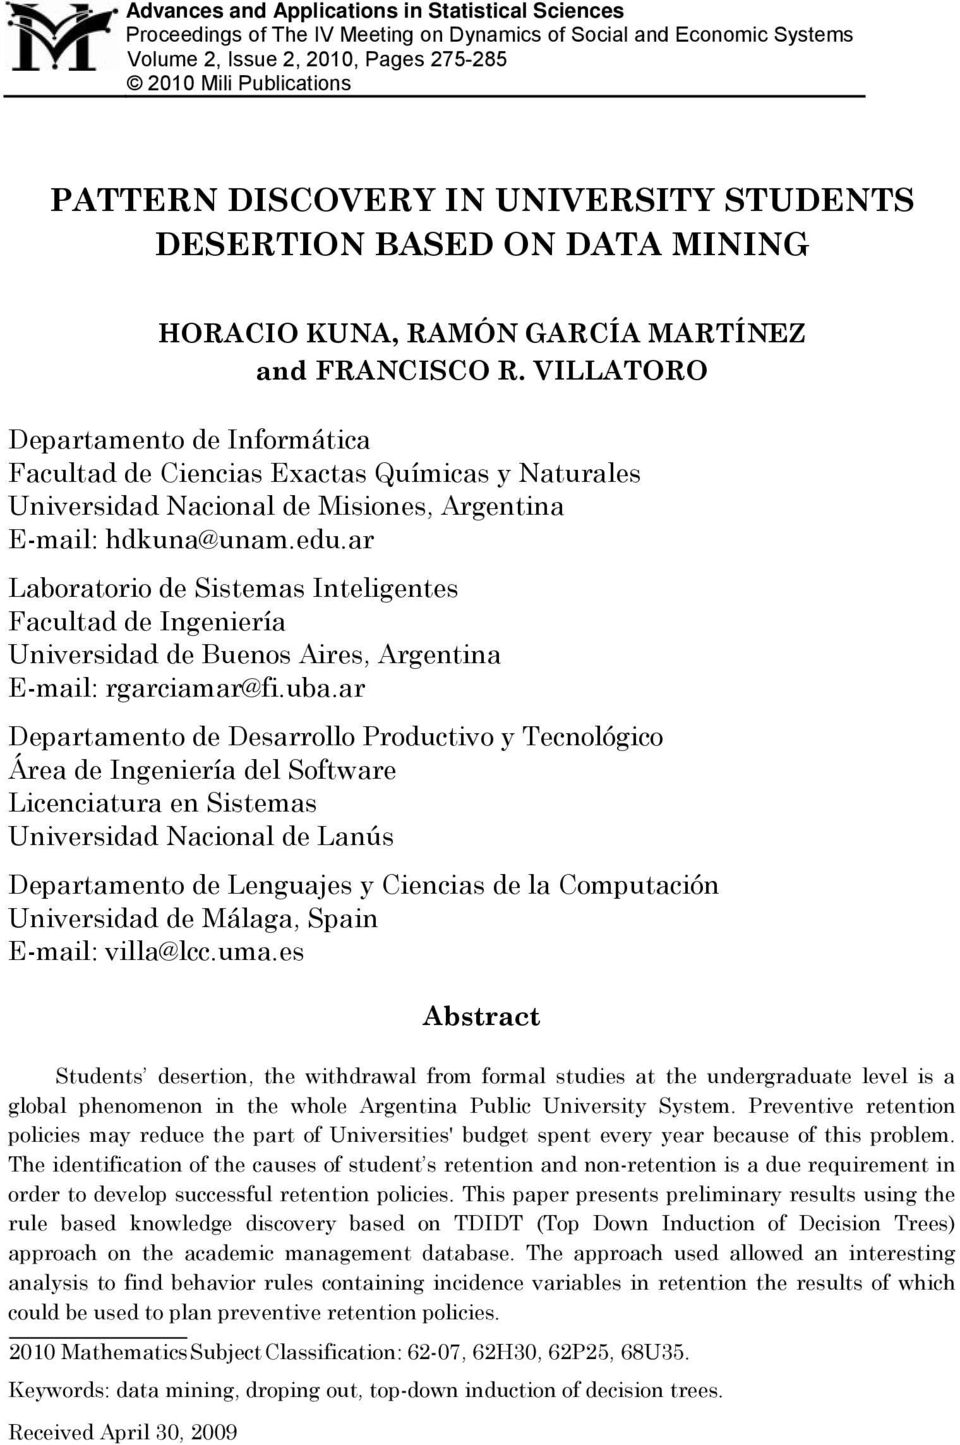 Keywords: data mining, droping out, top-down induction of decision trees. Received April 30, 2009 HORACIO KUNA, RAMÓN GARCÍA MARTÍNEZ and FRANCISCO R.